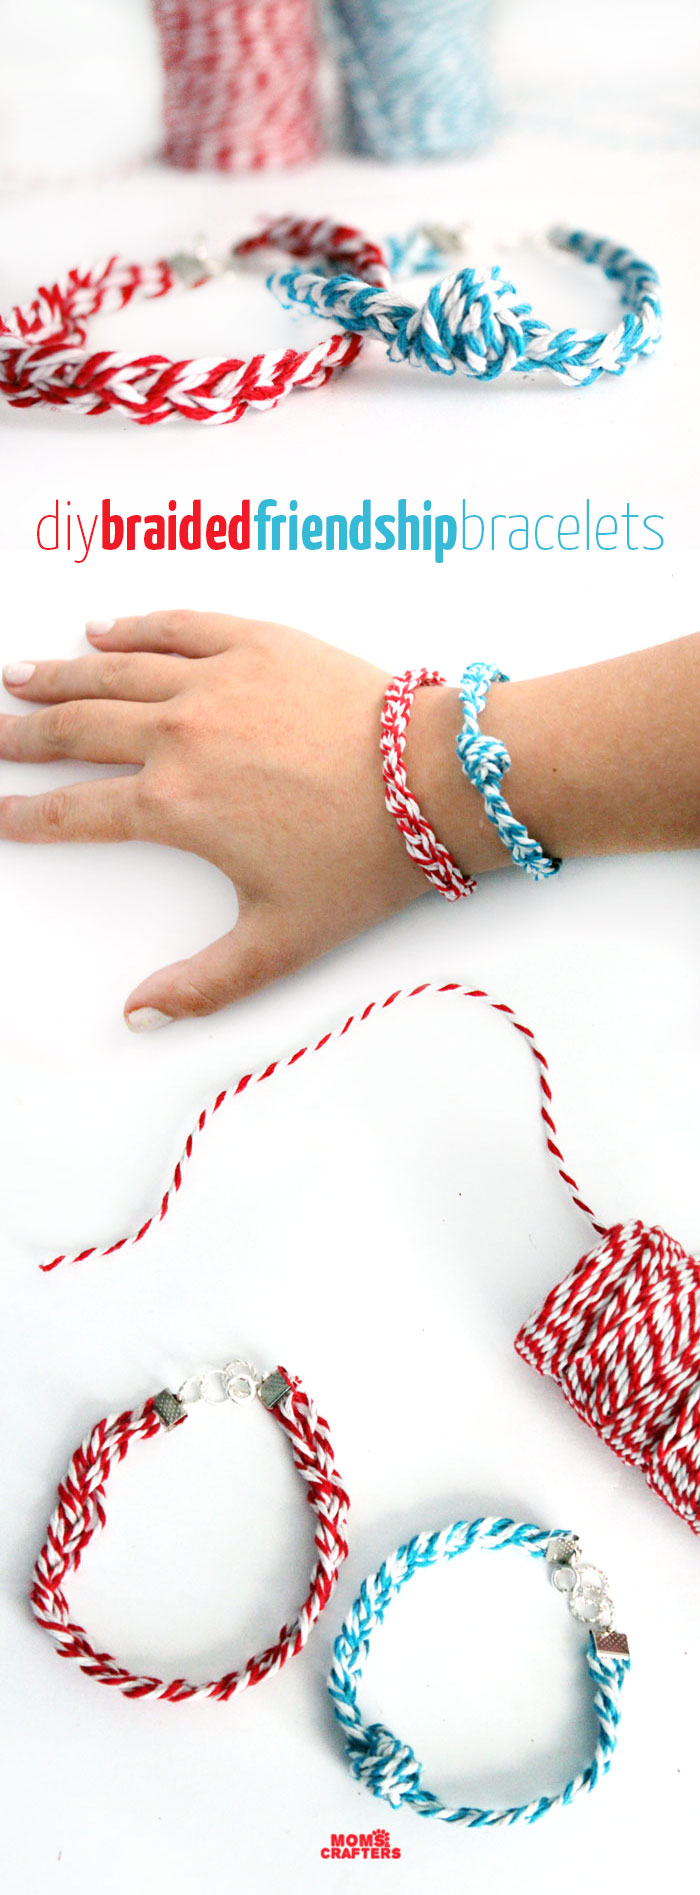 Make These Adorable Diy Braided Friendship Bracelet! A Quirky Jewelry Making  Craft To Learn Some